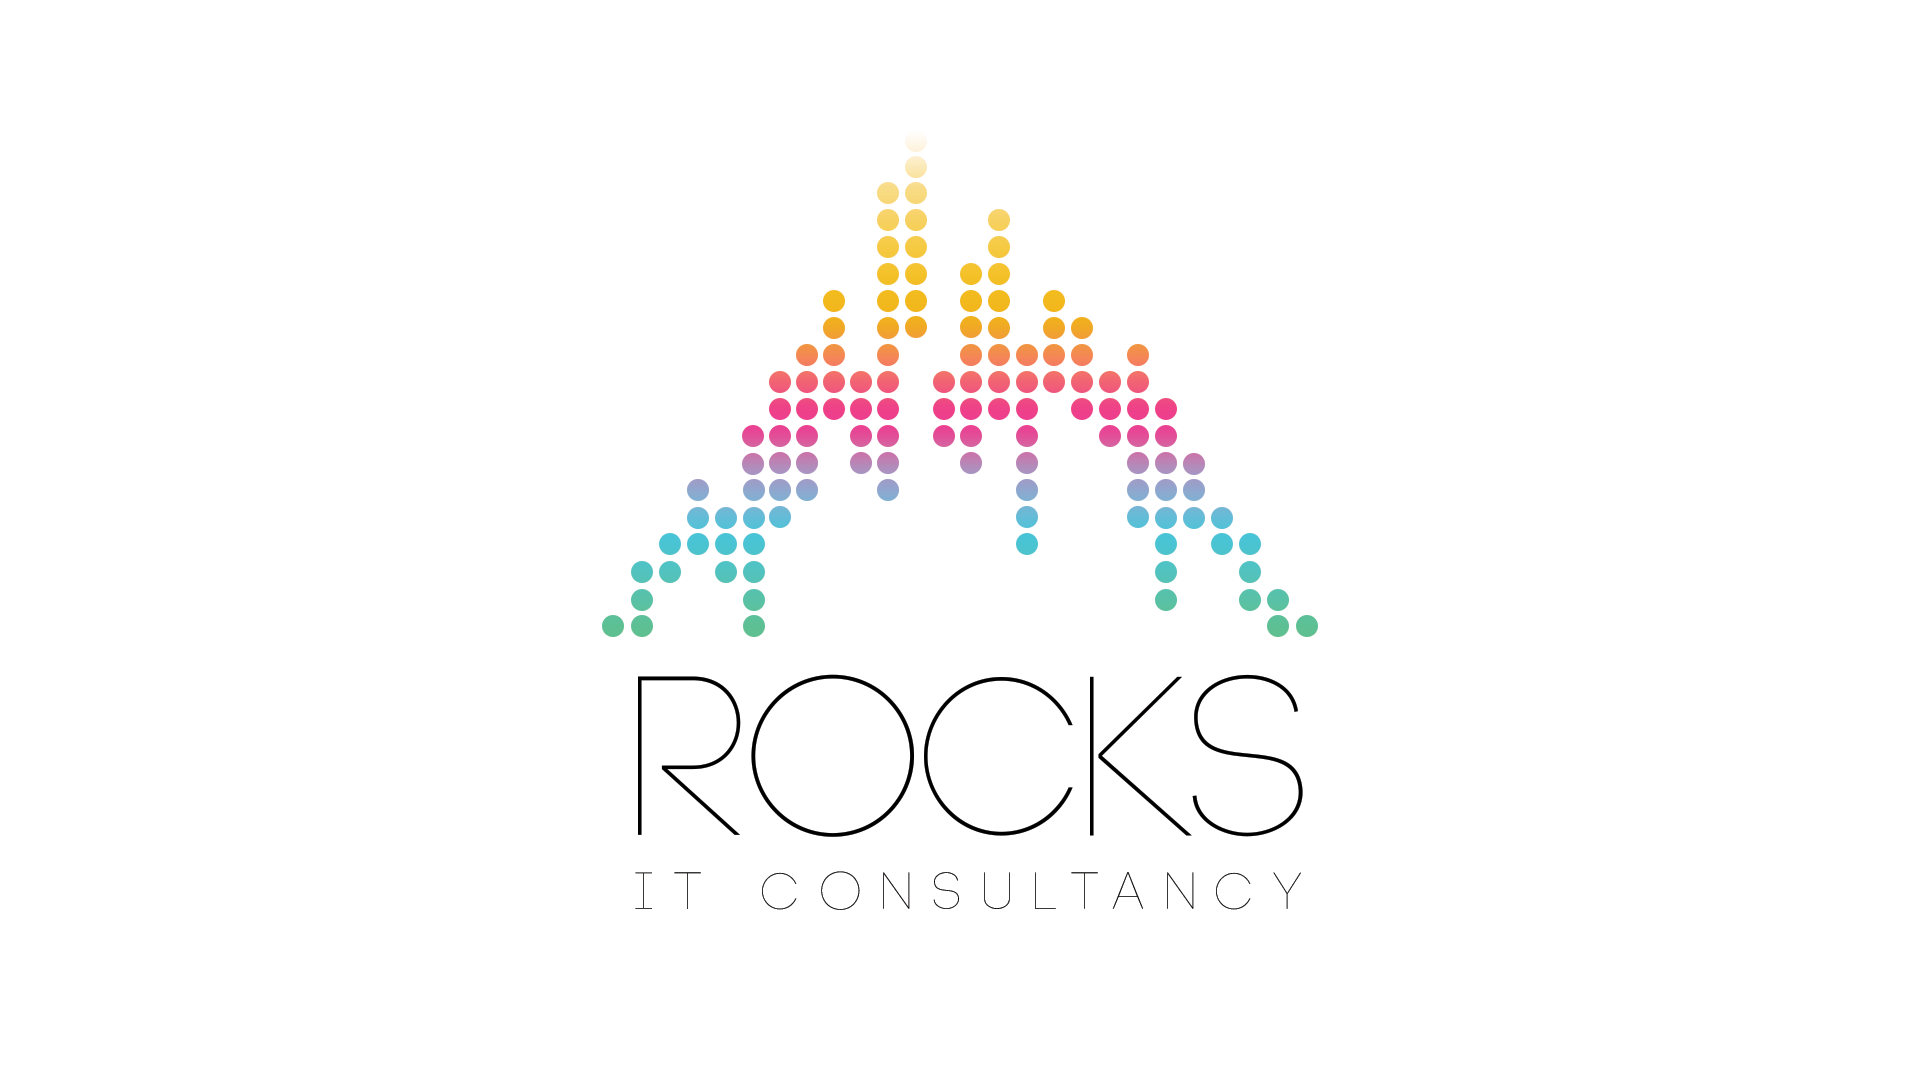 Rocks IT Consultancy